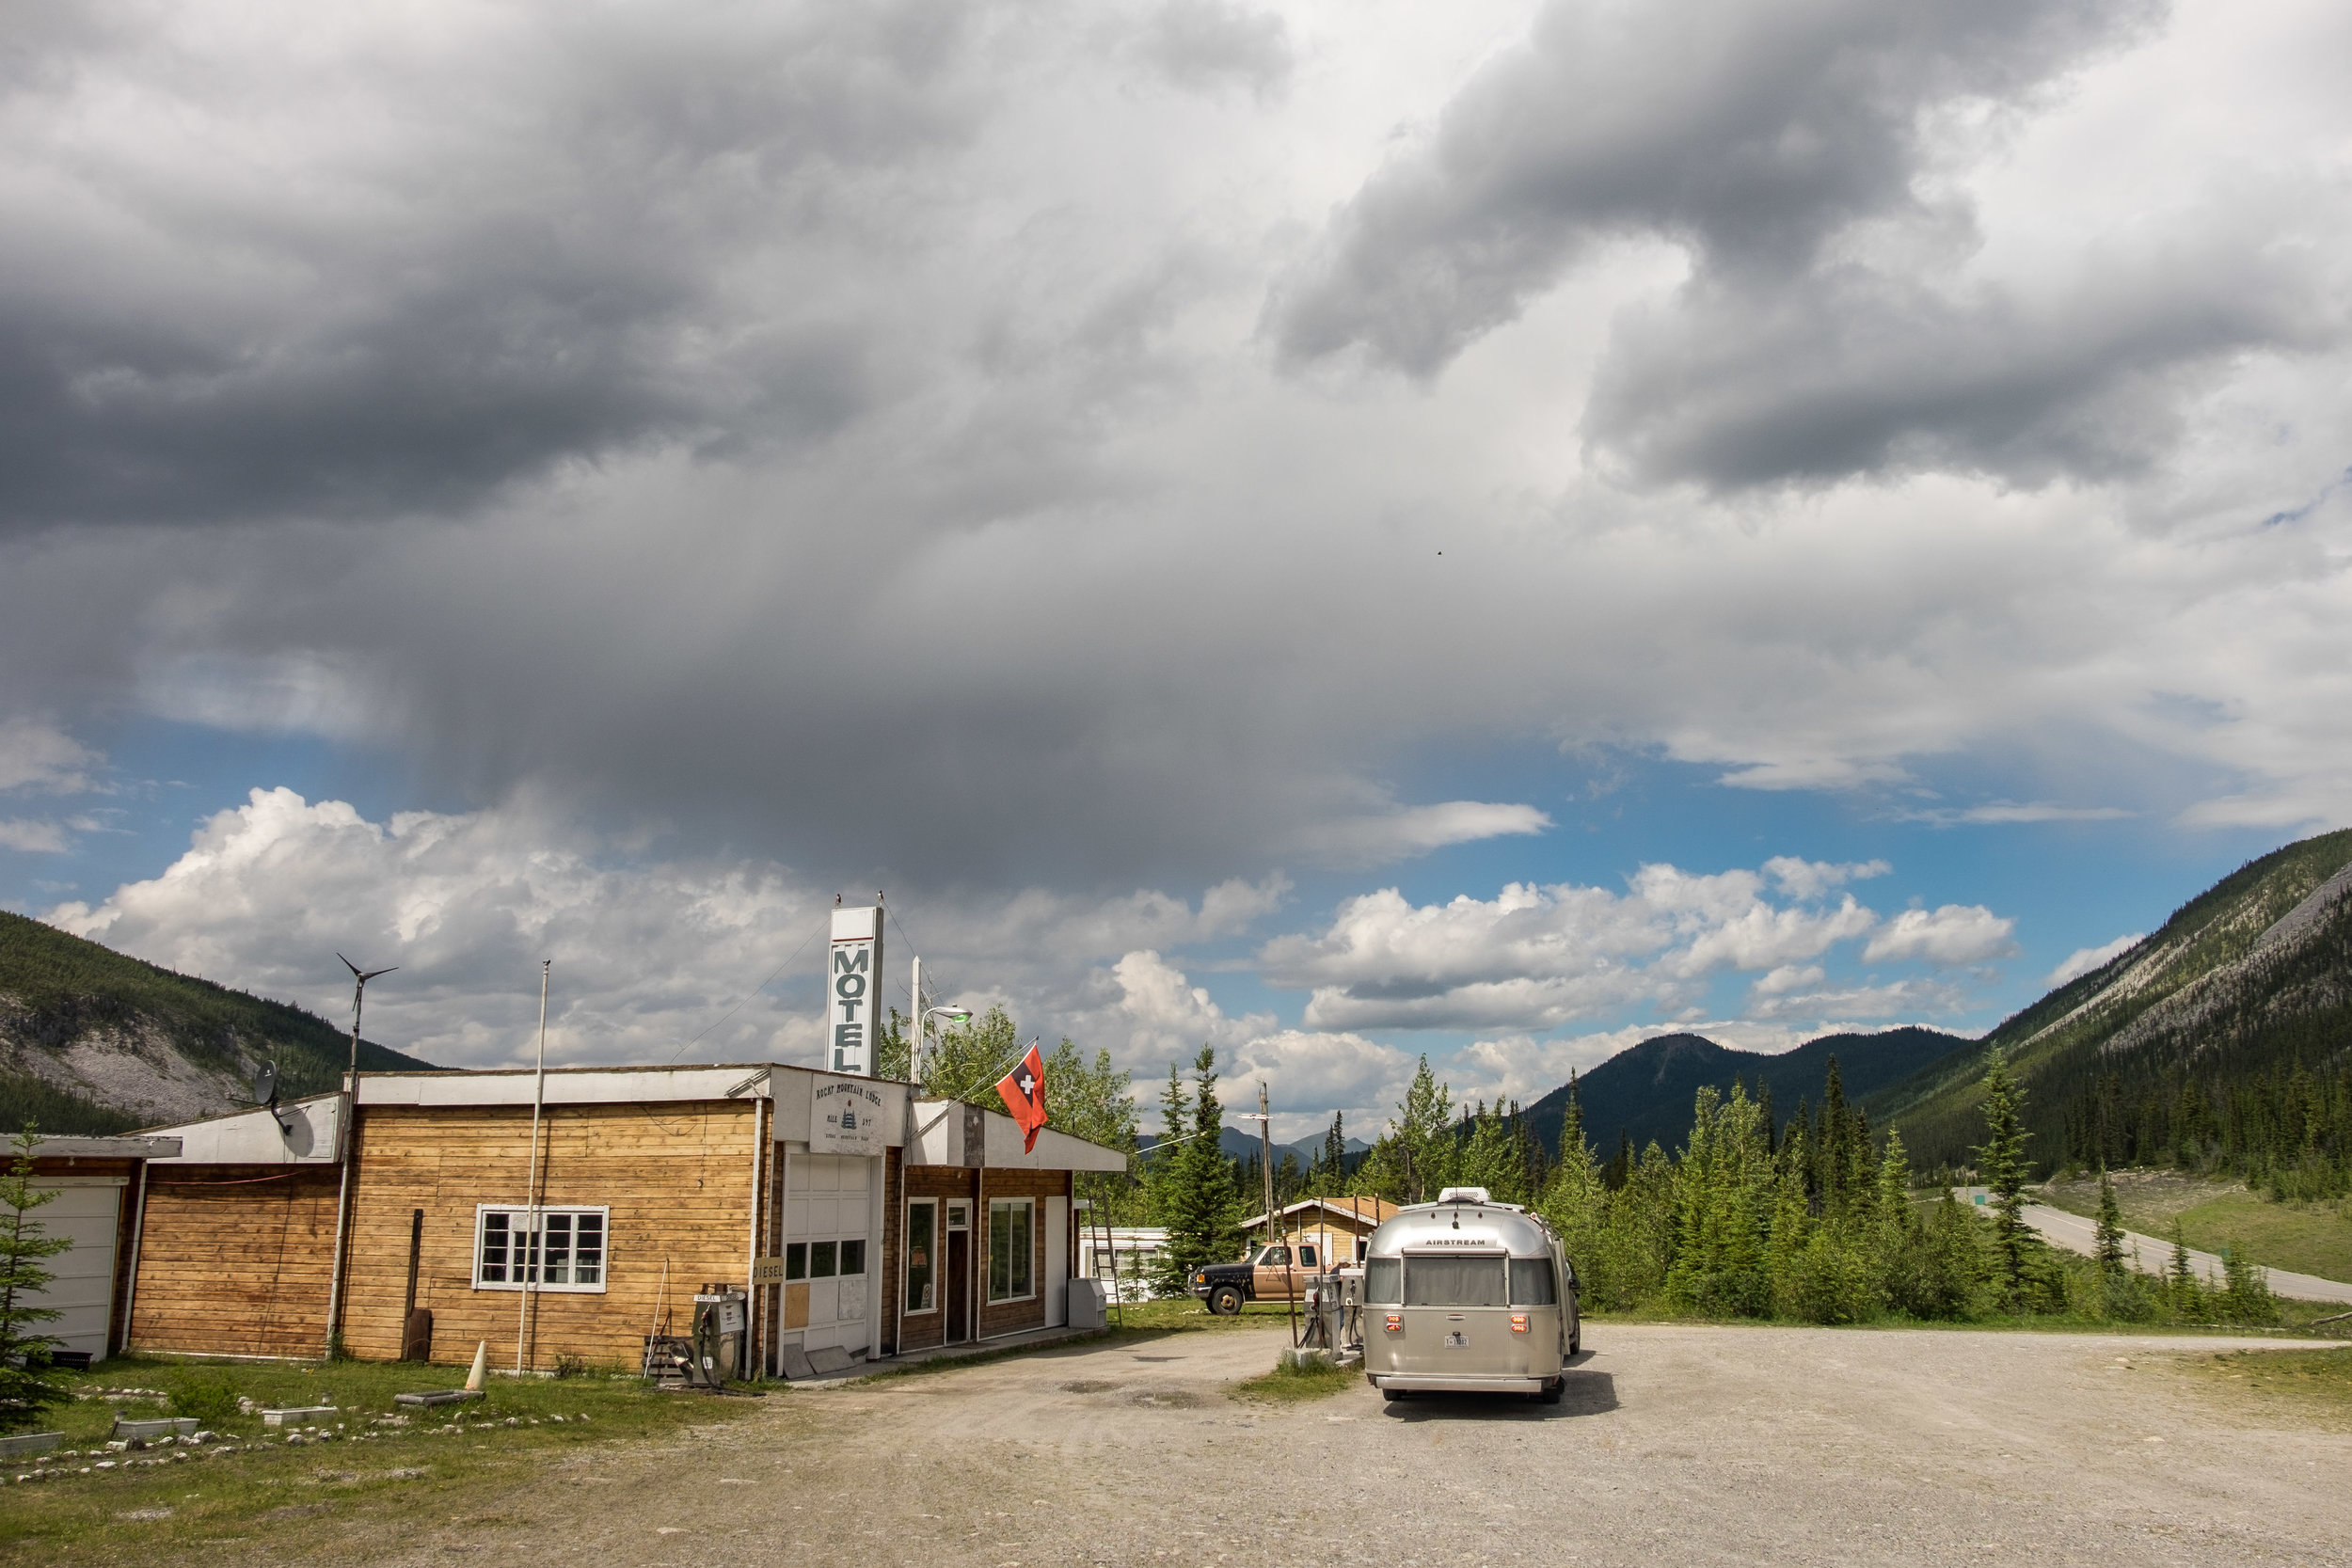 Fuel up whenever you can on the Alaska Highway, services are few and far between.